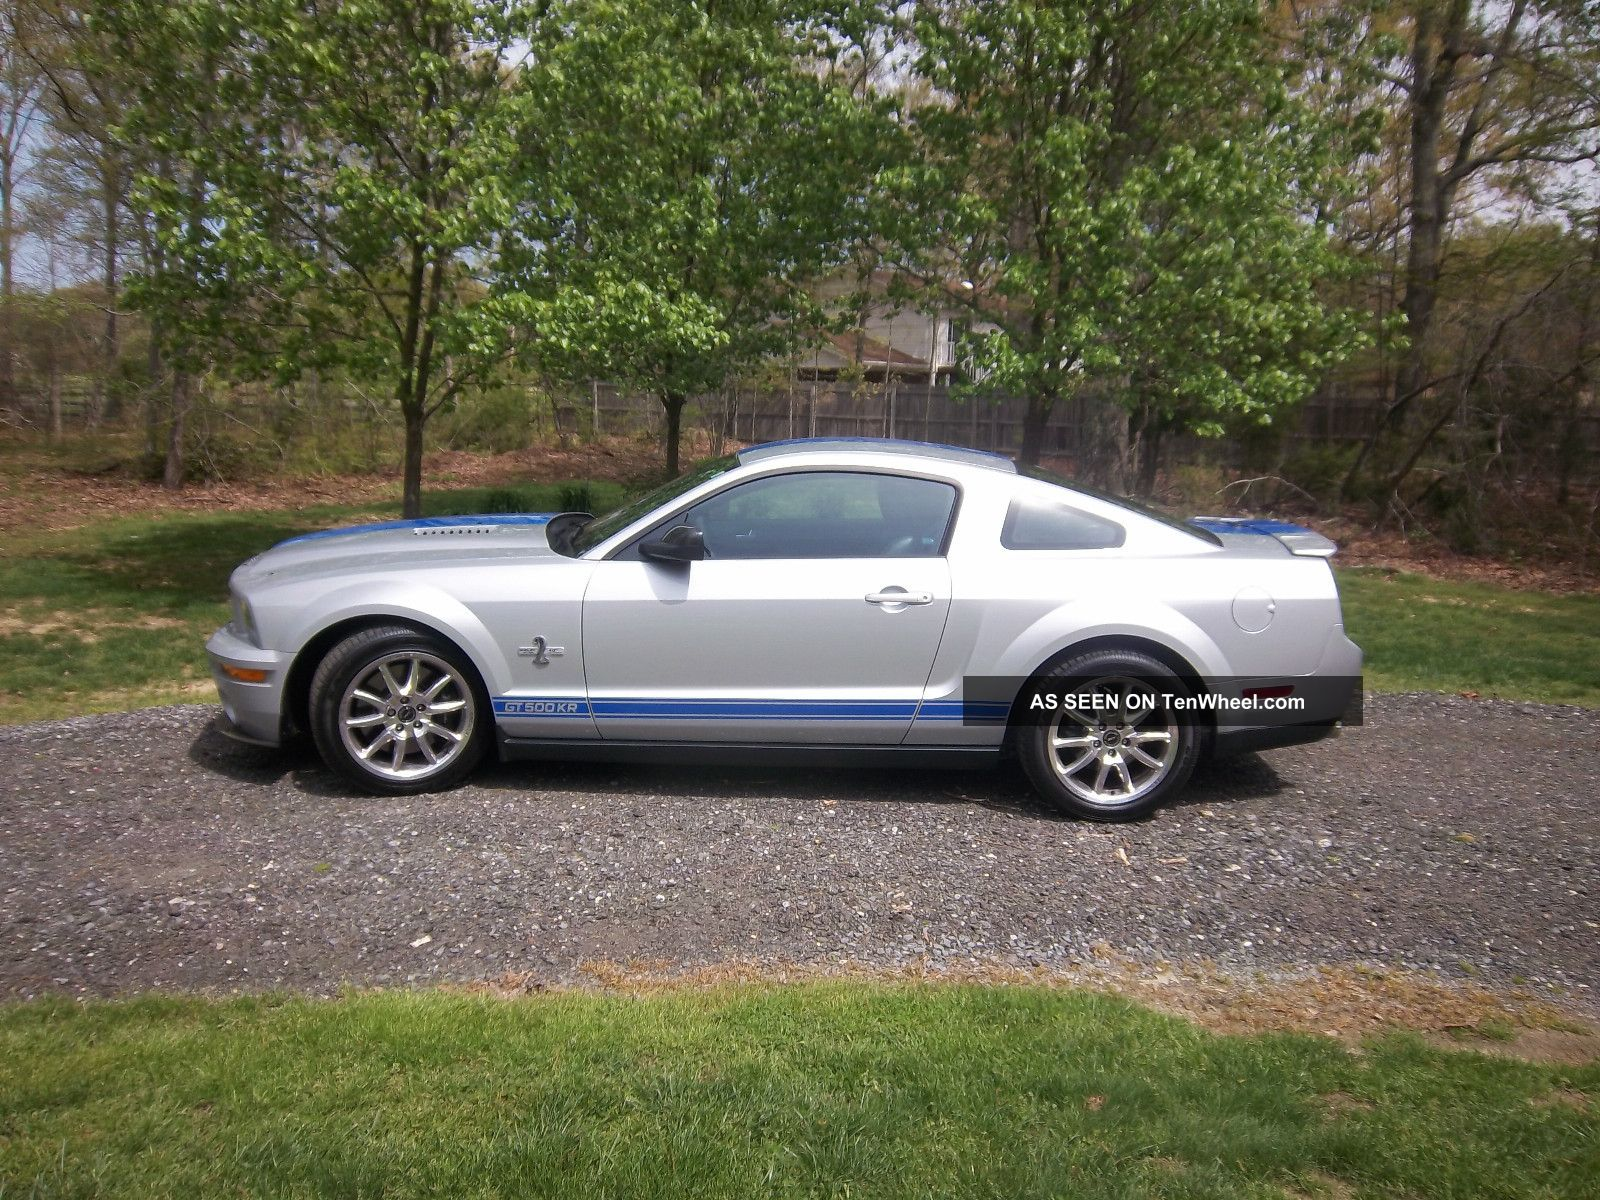 2008 Ford Mustang Shelby GT500KR photo - 3